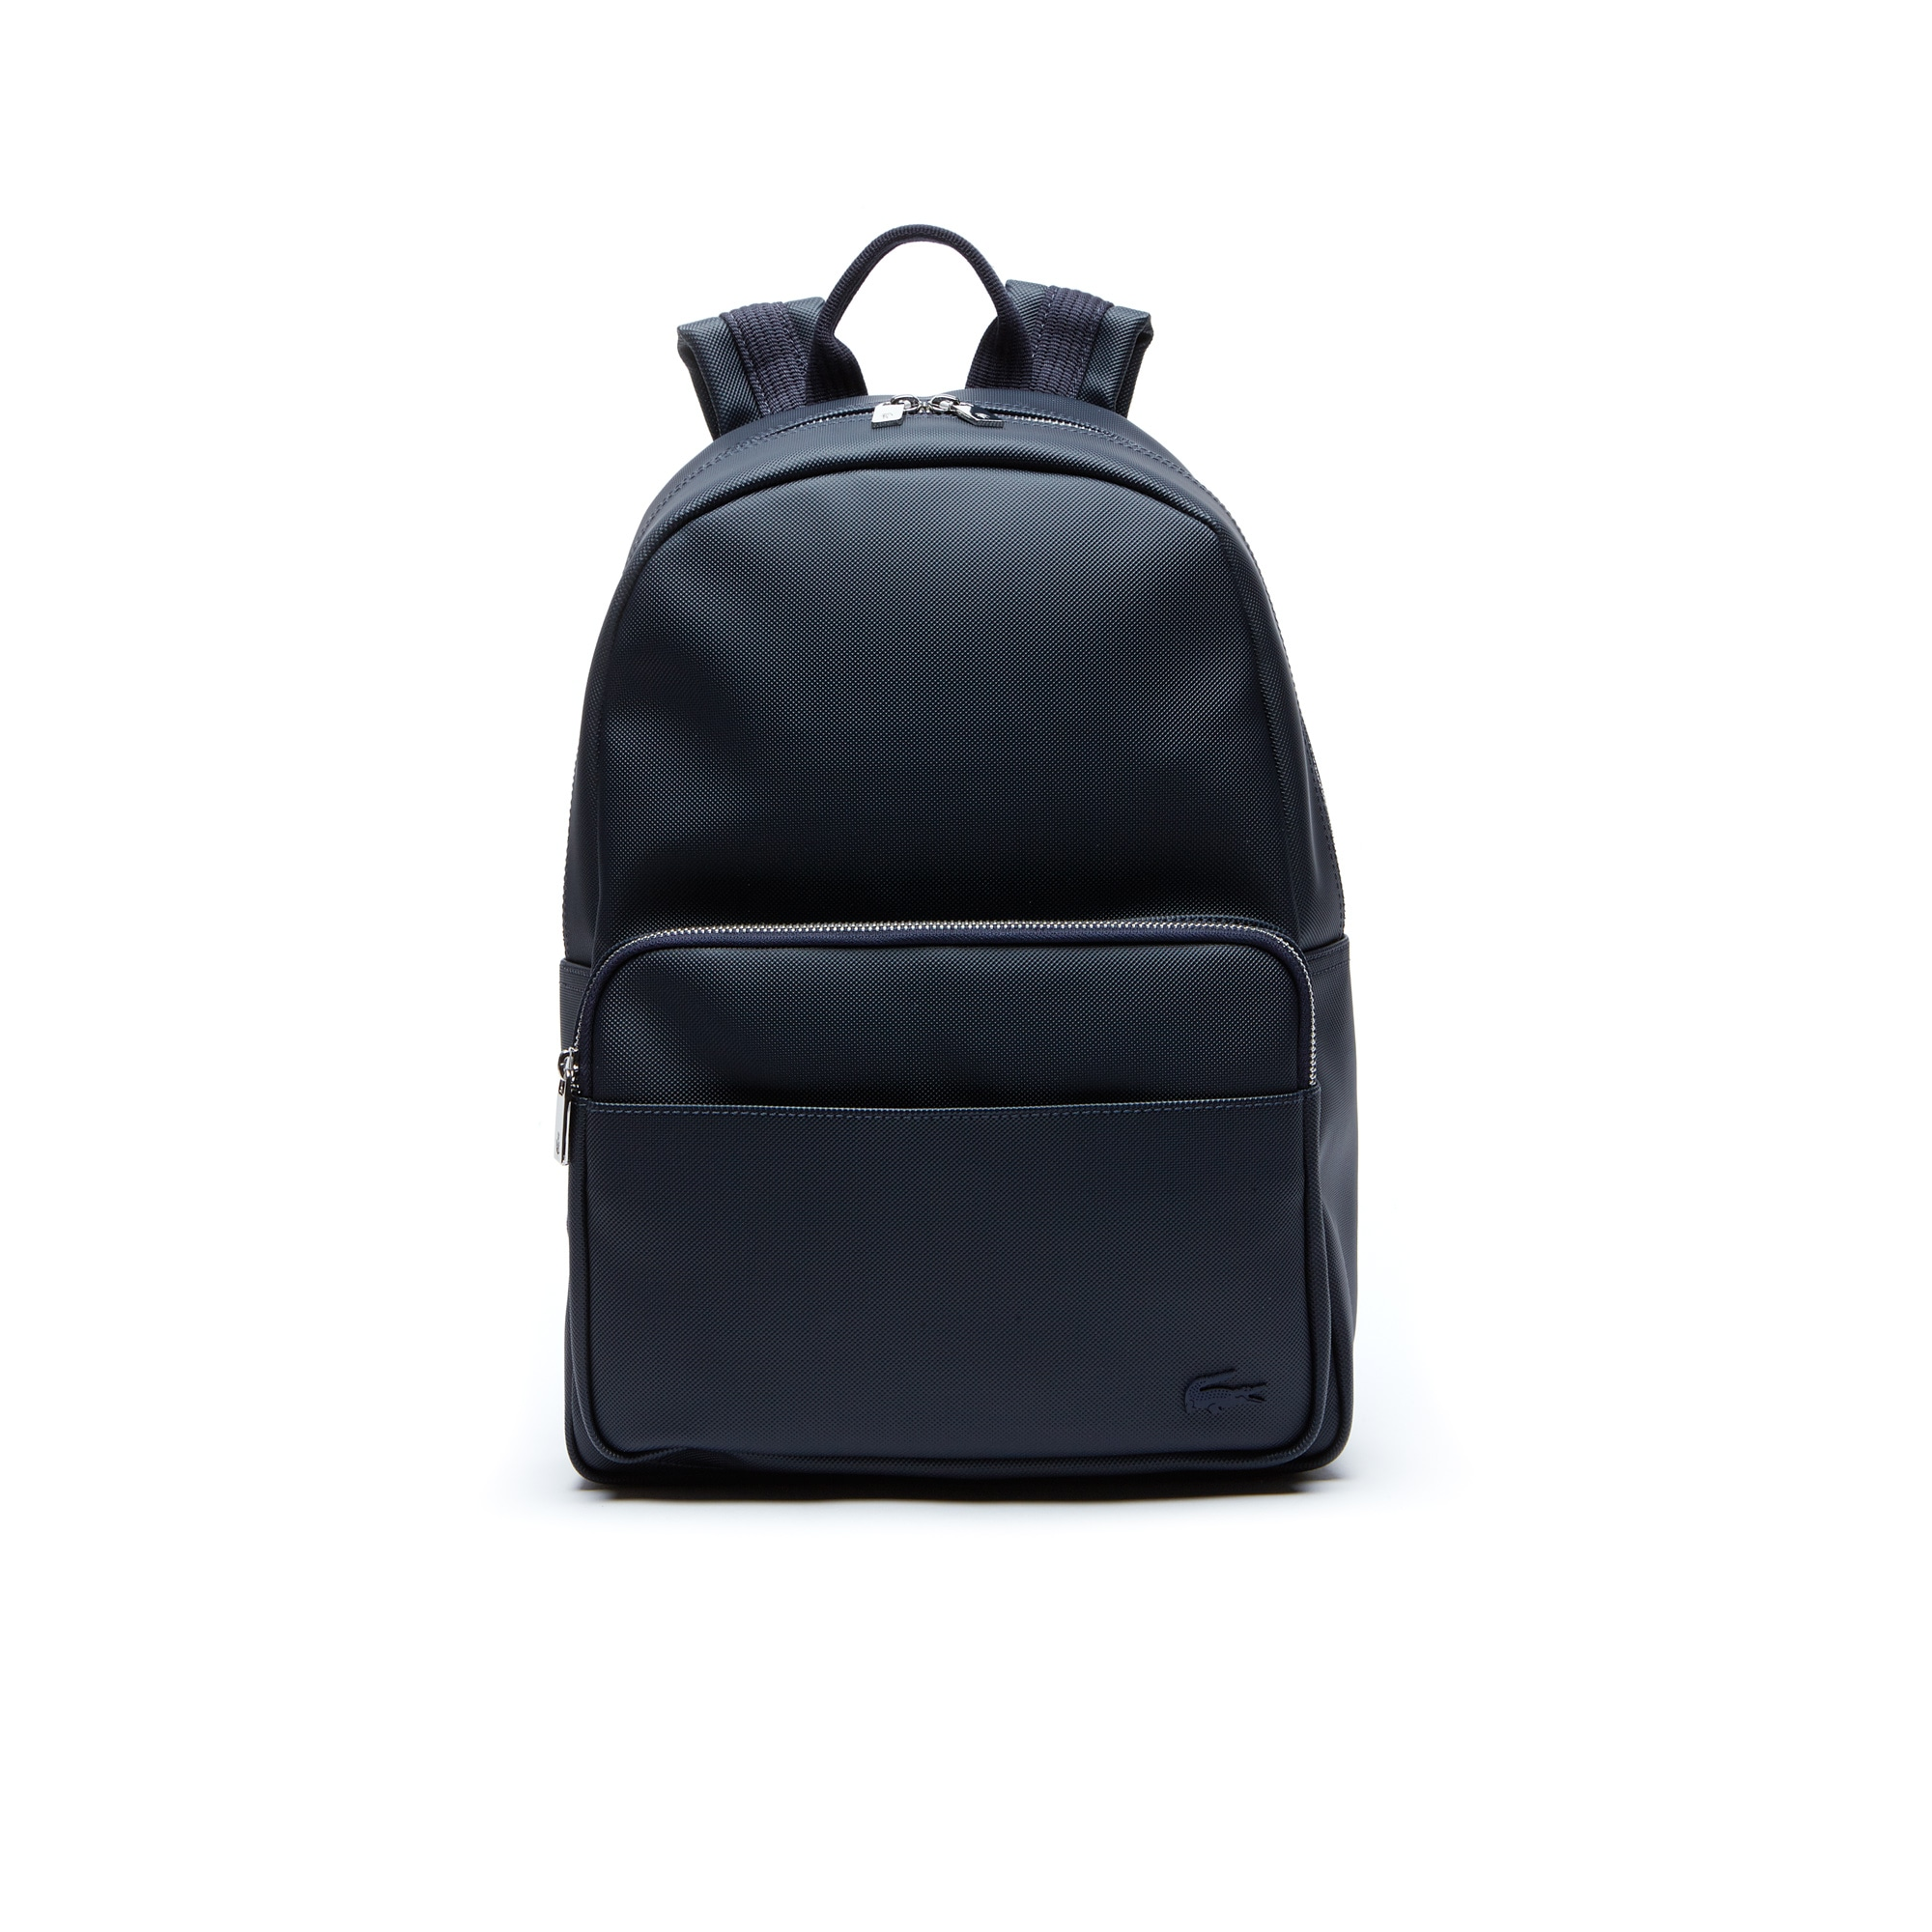 Backpacks & Bags for men | Leather goods